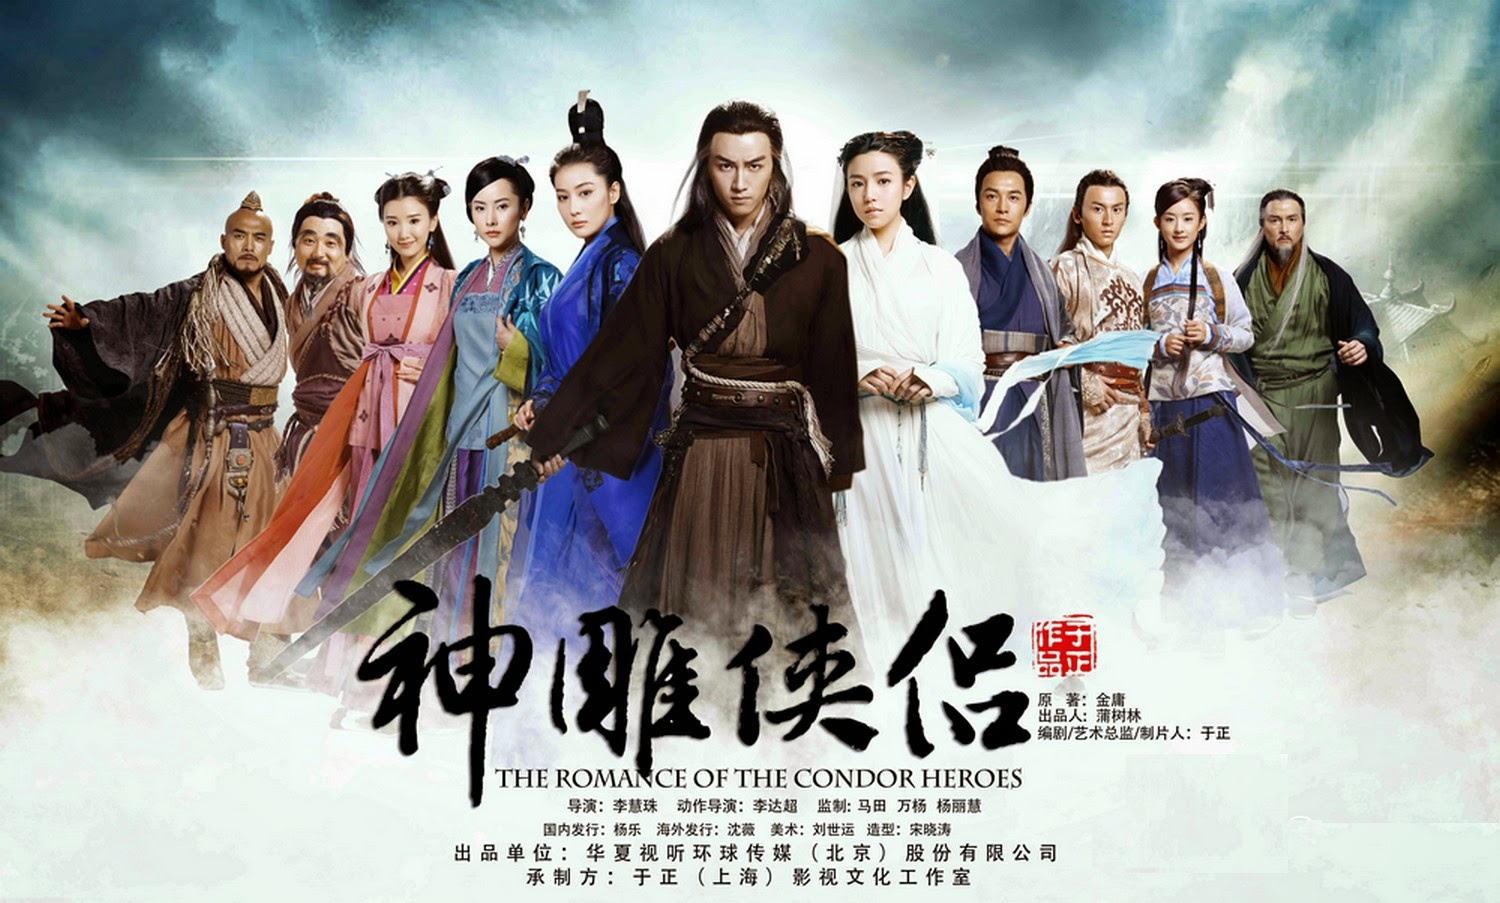 Nonton Romance of The Condor Heroes 2014 sub indo